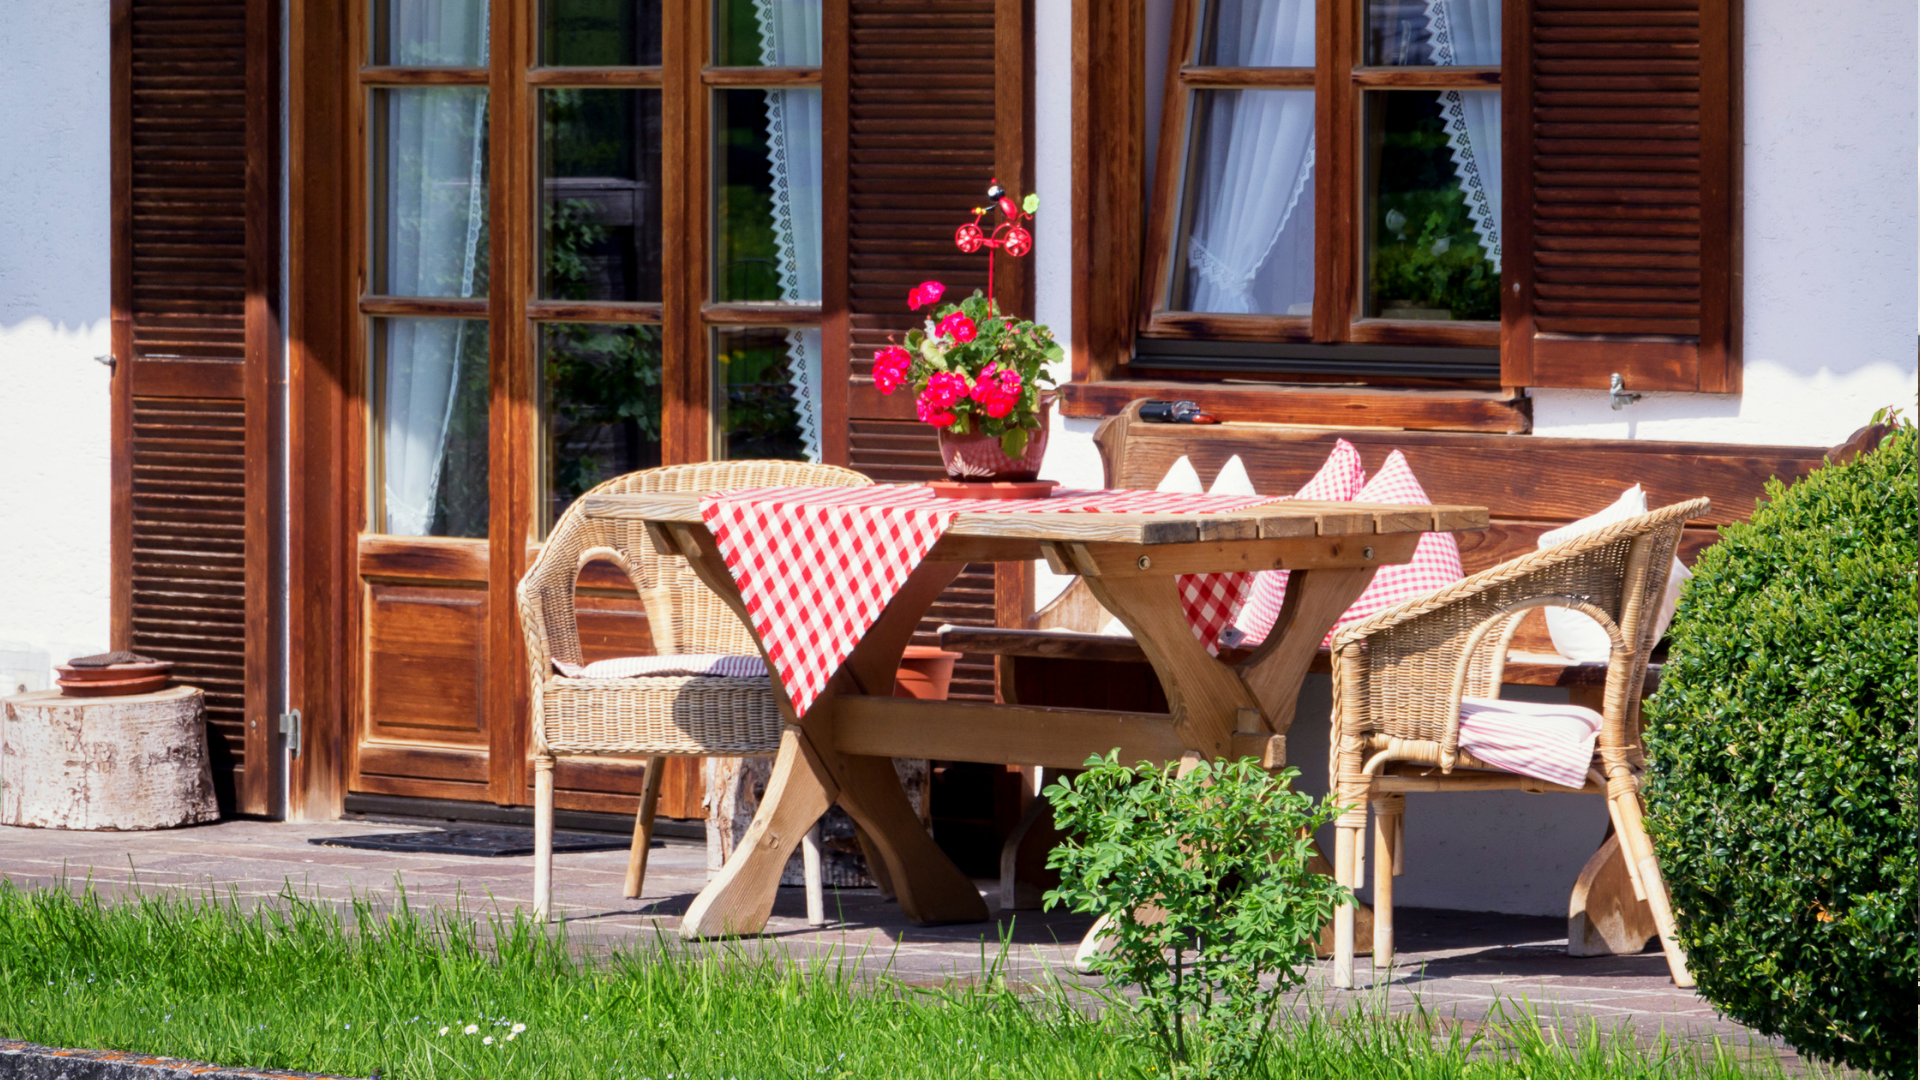 maintaining a clean outdoor space